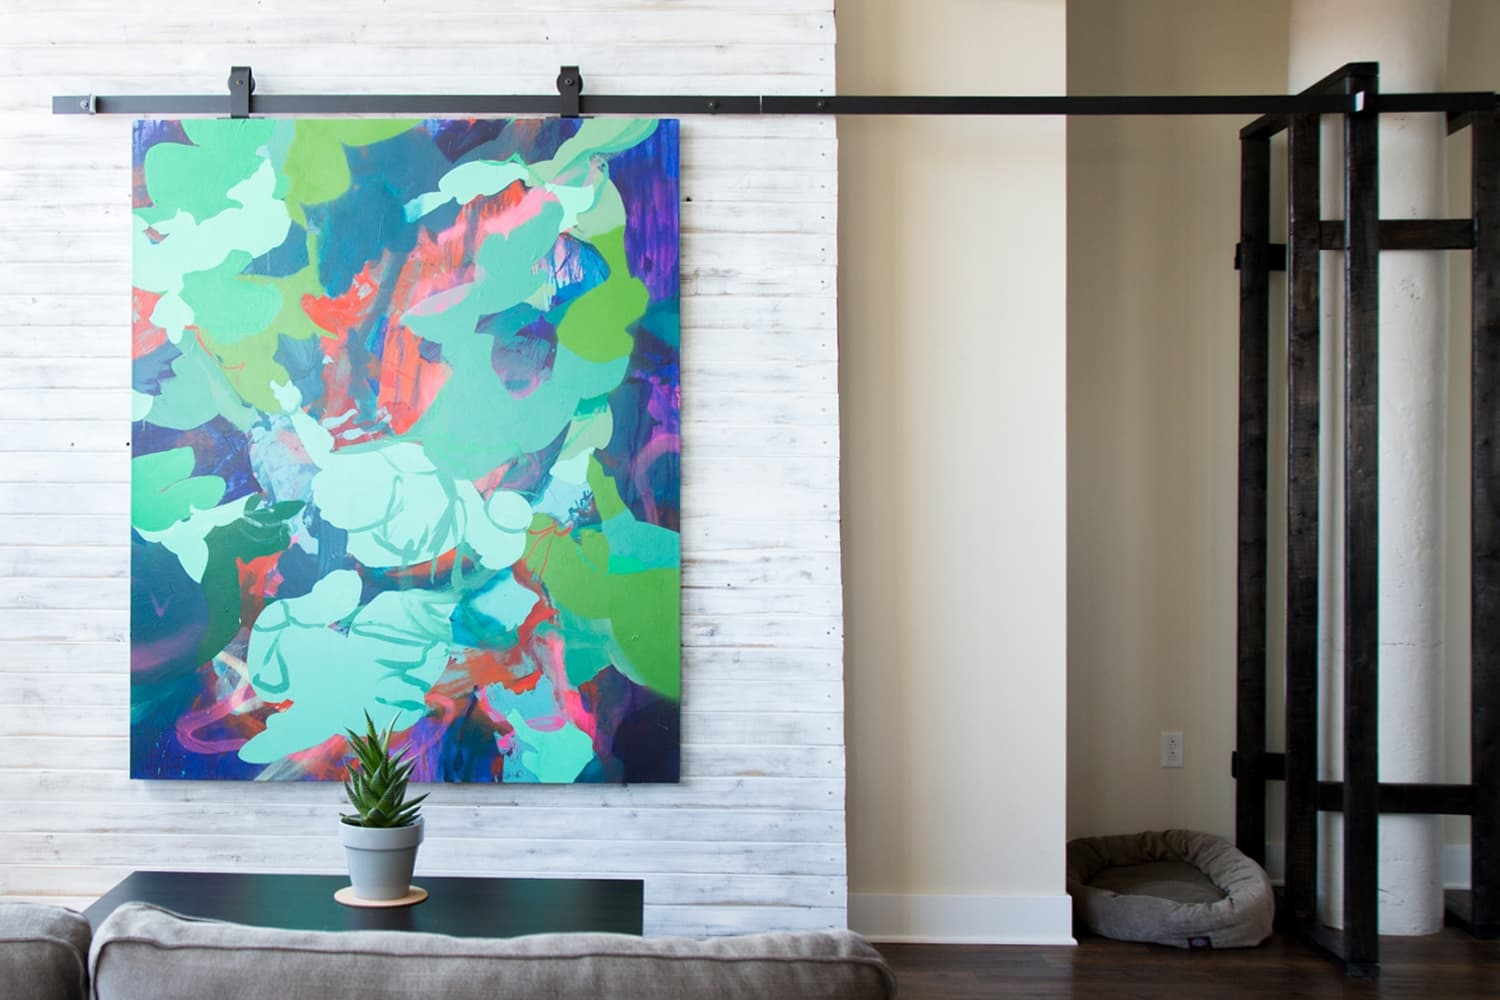 How To Make a TV-Hiding Sliding Art Accent Wall